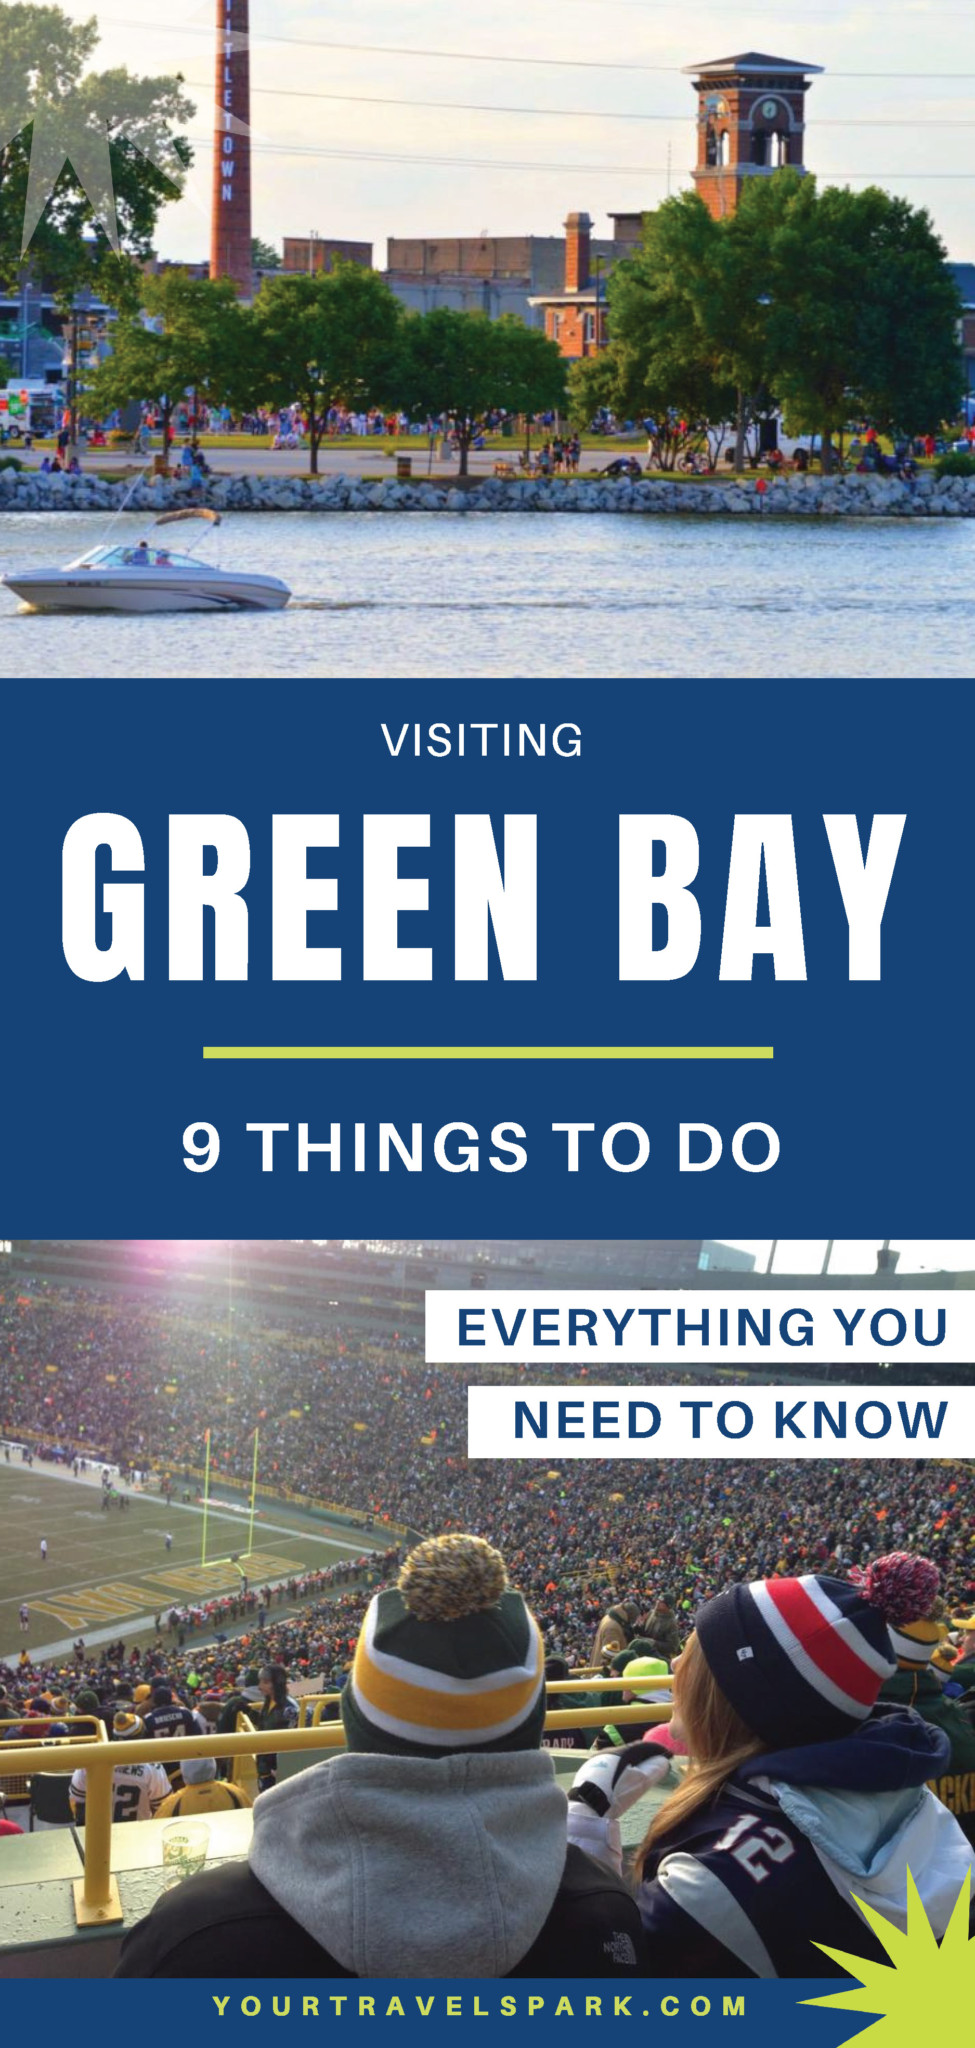 Visiting the new Titletown District in Green Bay, Wisconsin — the new district near Lambeau Field by the Green Bay Packers, and the things to do in Green Bay, Wisconsin. #greenbaypackers #greenbay #packers #greenbay #greenbaywi #greenbaywisconsin #titletown #titletowndistrict #titletowndistrictgreenbay #gopackgo #lambeau #lambeaufield #arienshills #ariens